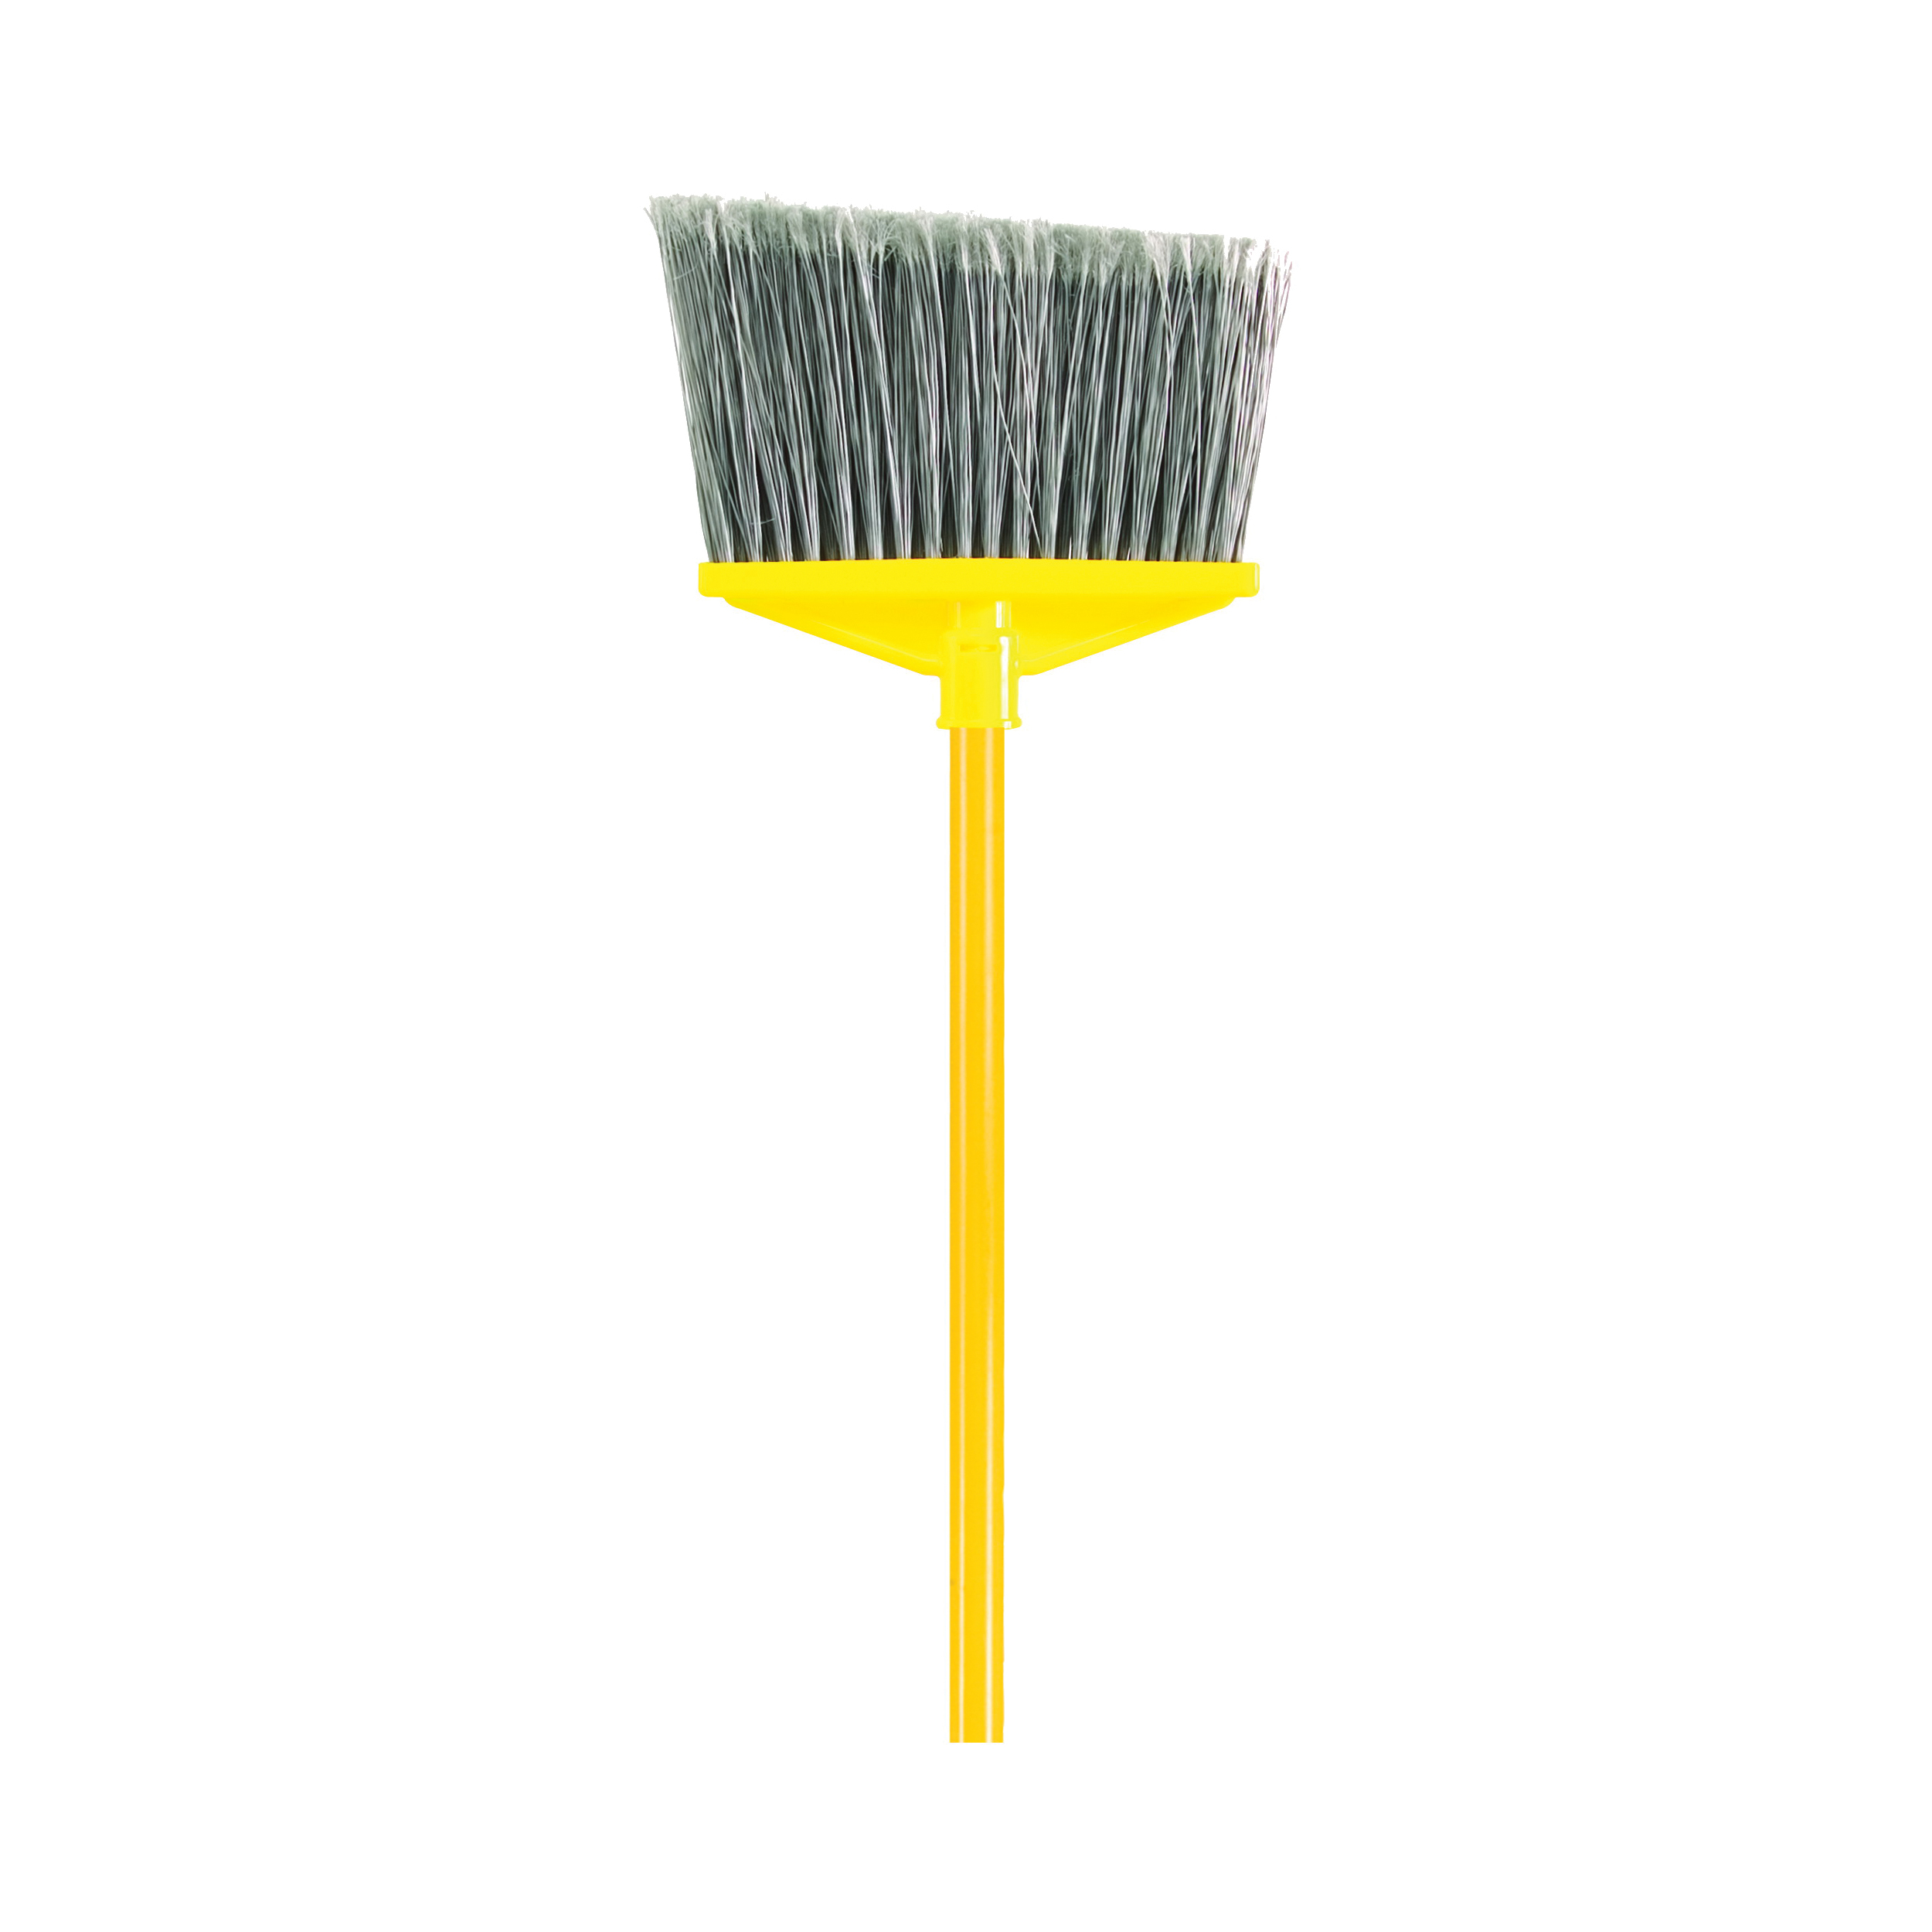 Picture of Rubbermaid FG637500GRAY Angle Broom, 10-1/2 in Sweep Face, 6-3/4 in L Trim, Polypropylene Bristle, Gray Bristle